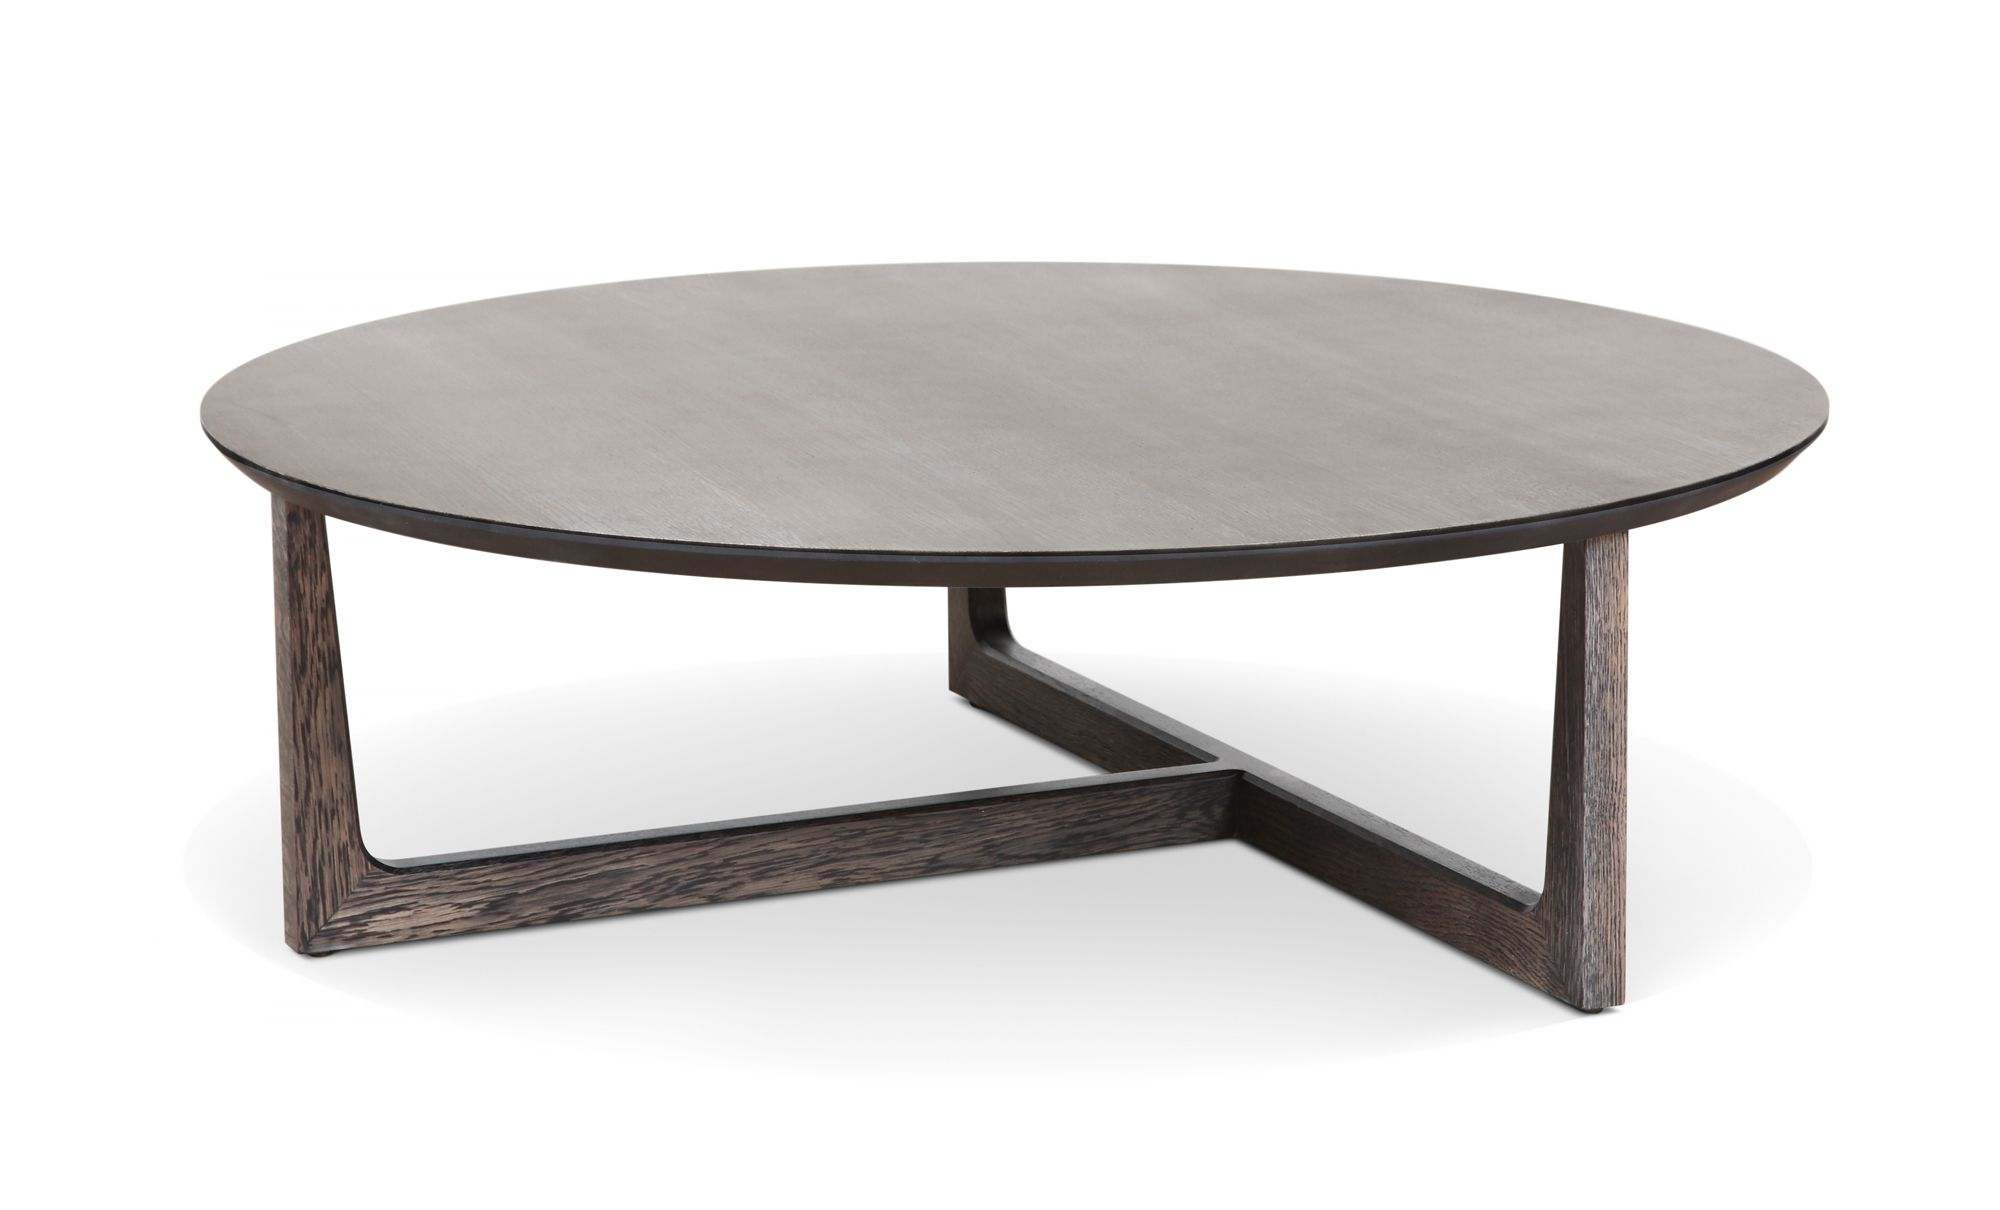 The Sky Coffee Tables And Side Tables Are A Proposal In Intended For Widely Used Evalline Modern Dark Walnut Coffee Tables (View 12 of 20)